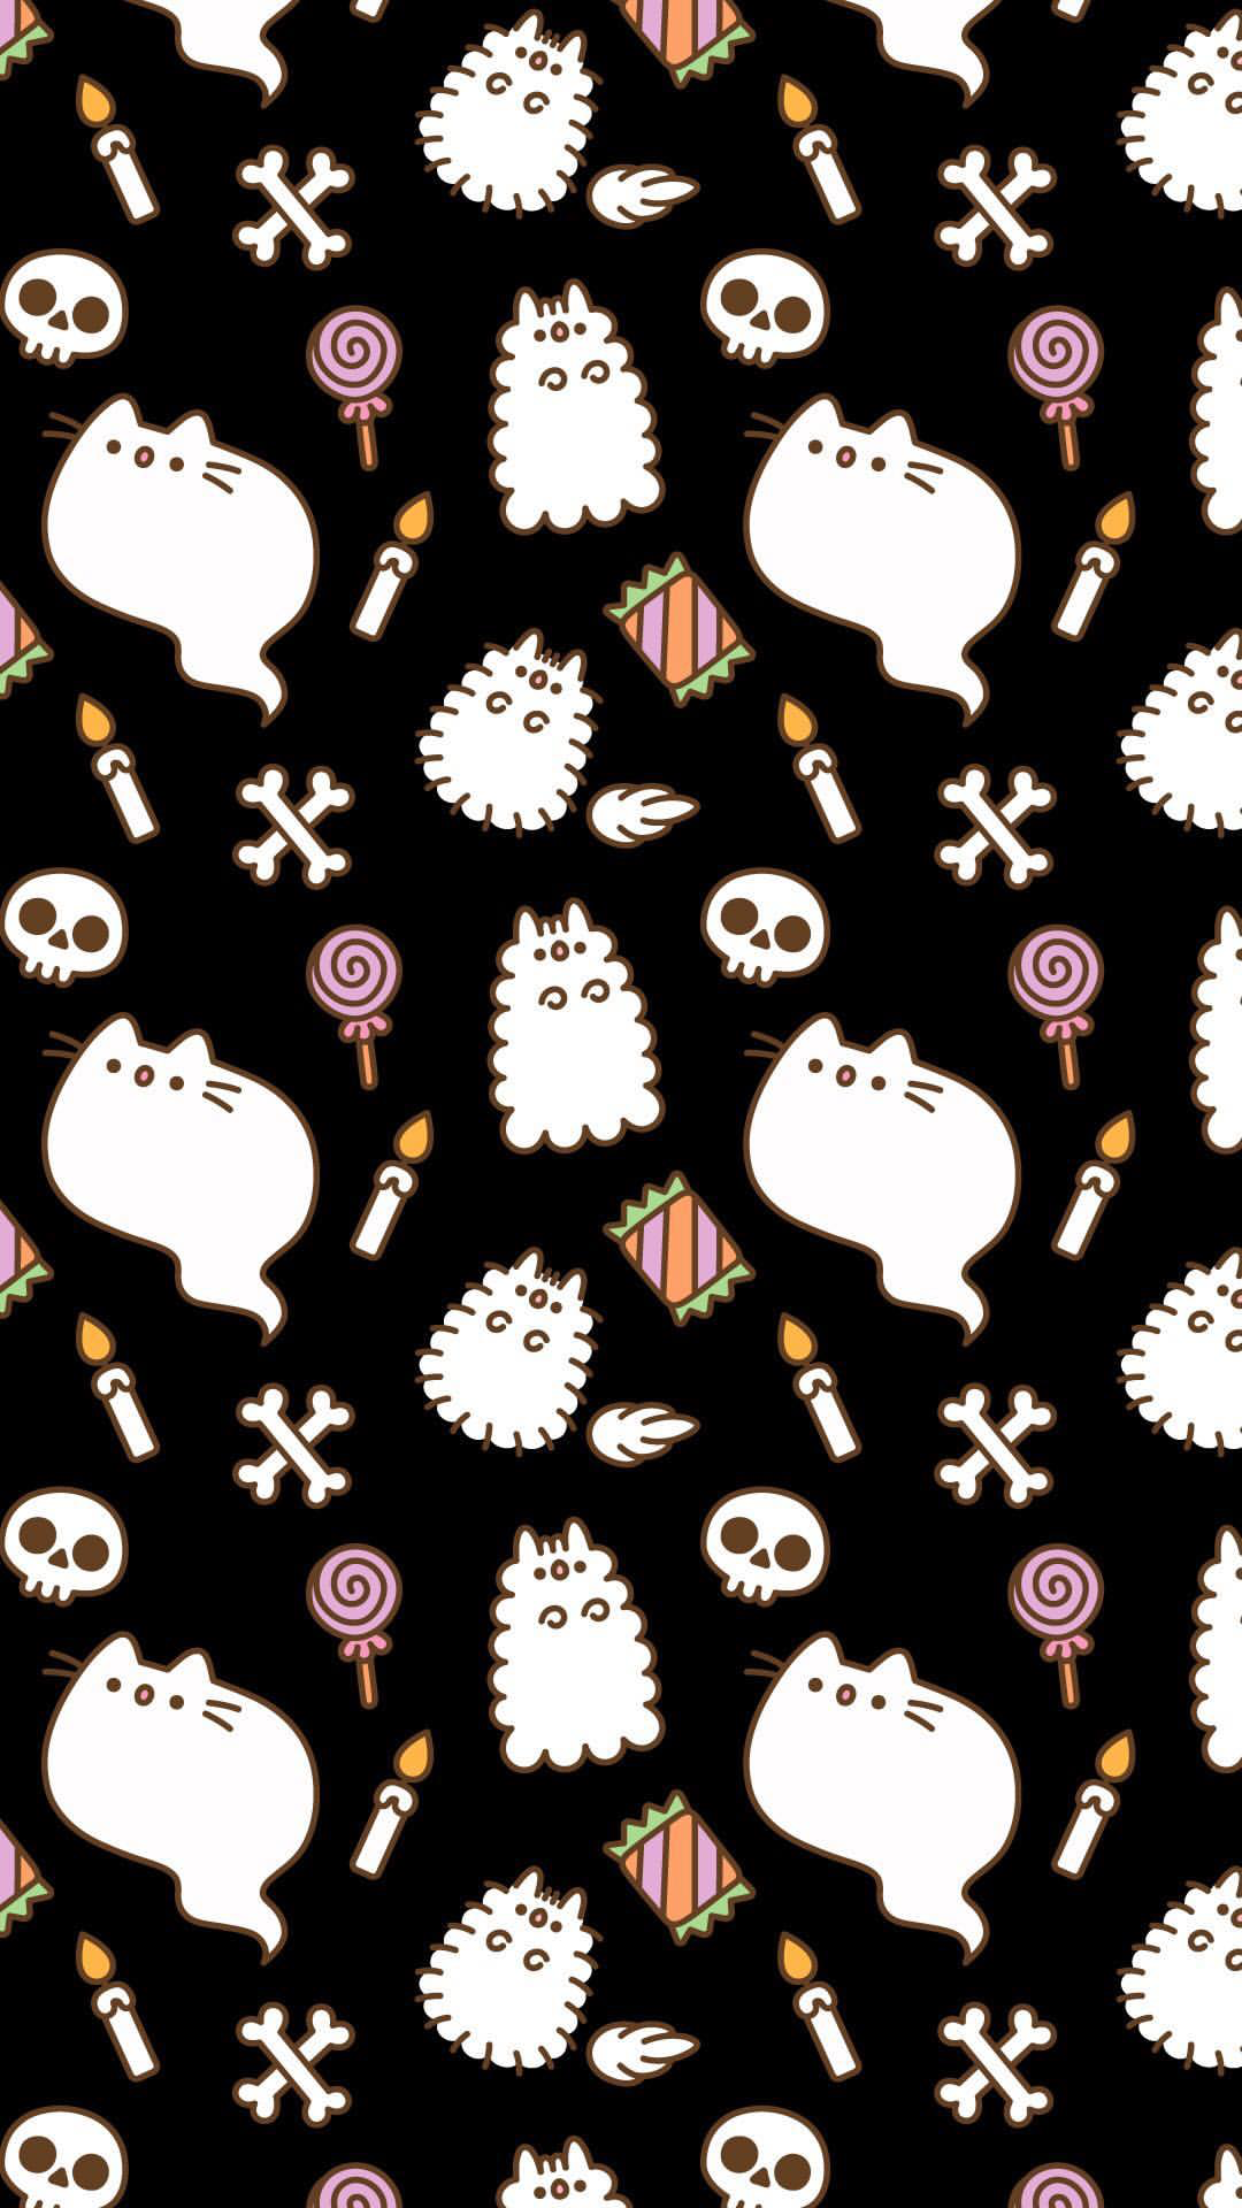 Pin by Jessica Grant 🦄 on Pusheen Halloween wallpaper